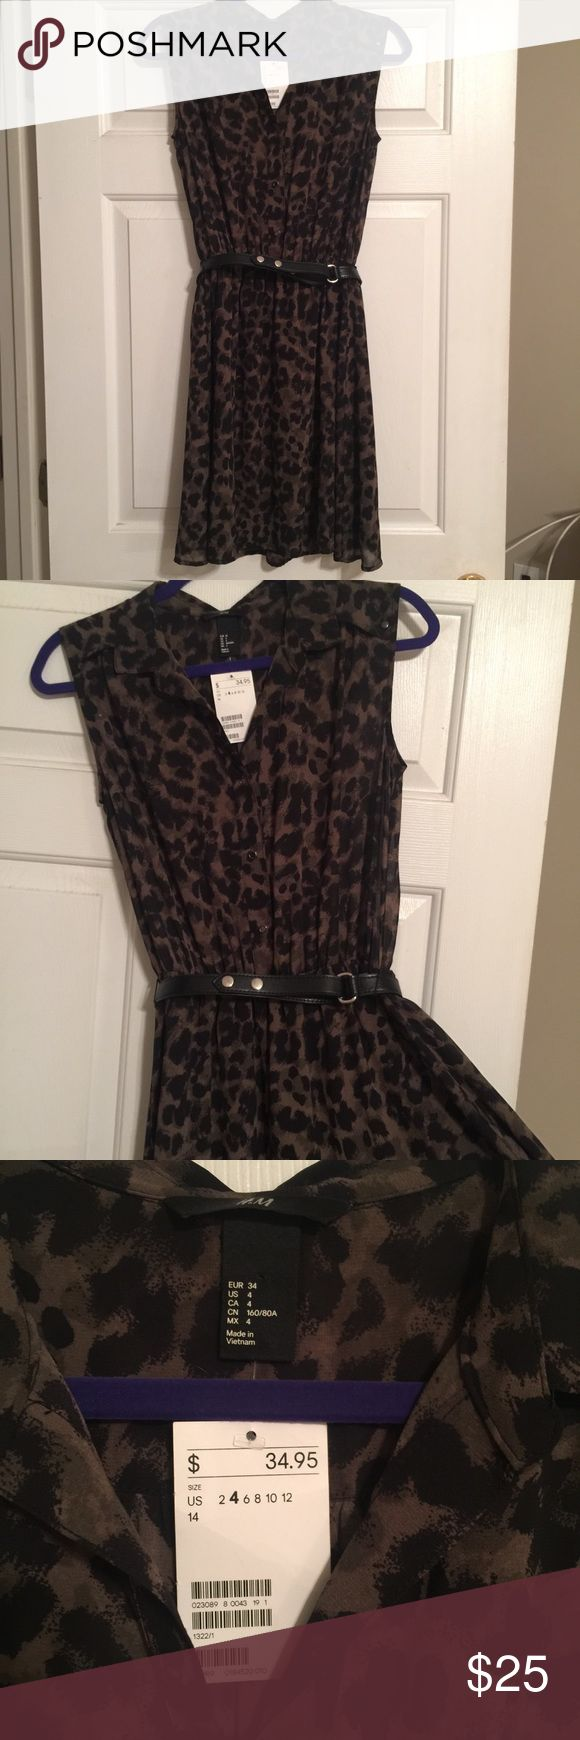 H&M Cheetah Print Shirt Dress Super cute dress in brand new condition. Include black waist belt. Sleeveless with collar and button down front. Light rayon with lining. Perfect to dress up or down! H&M Dresses Mini